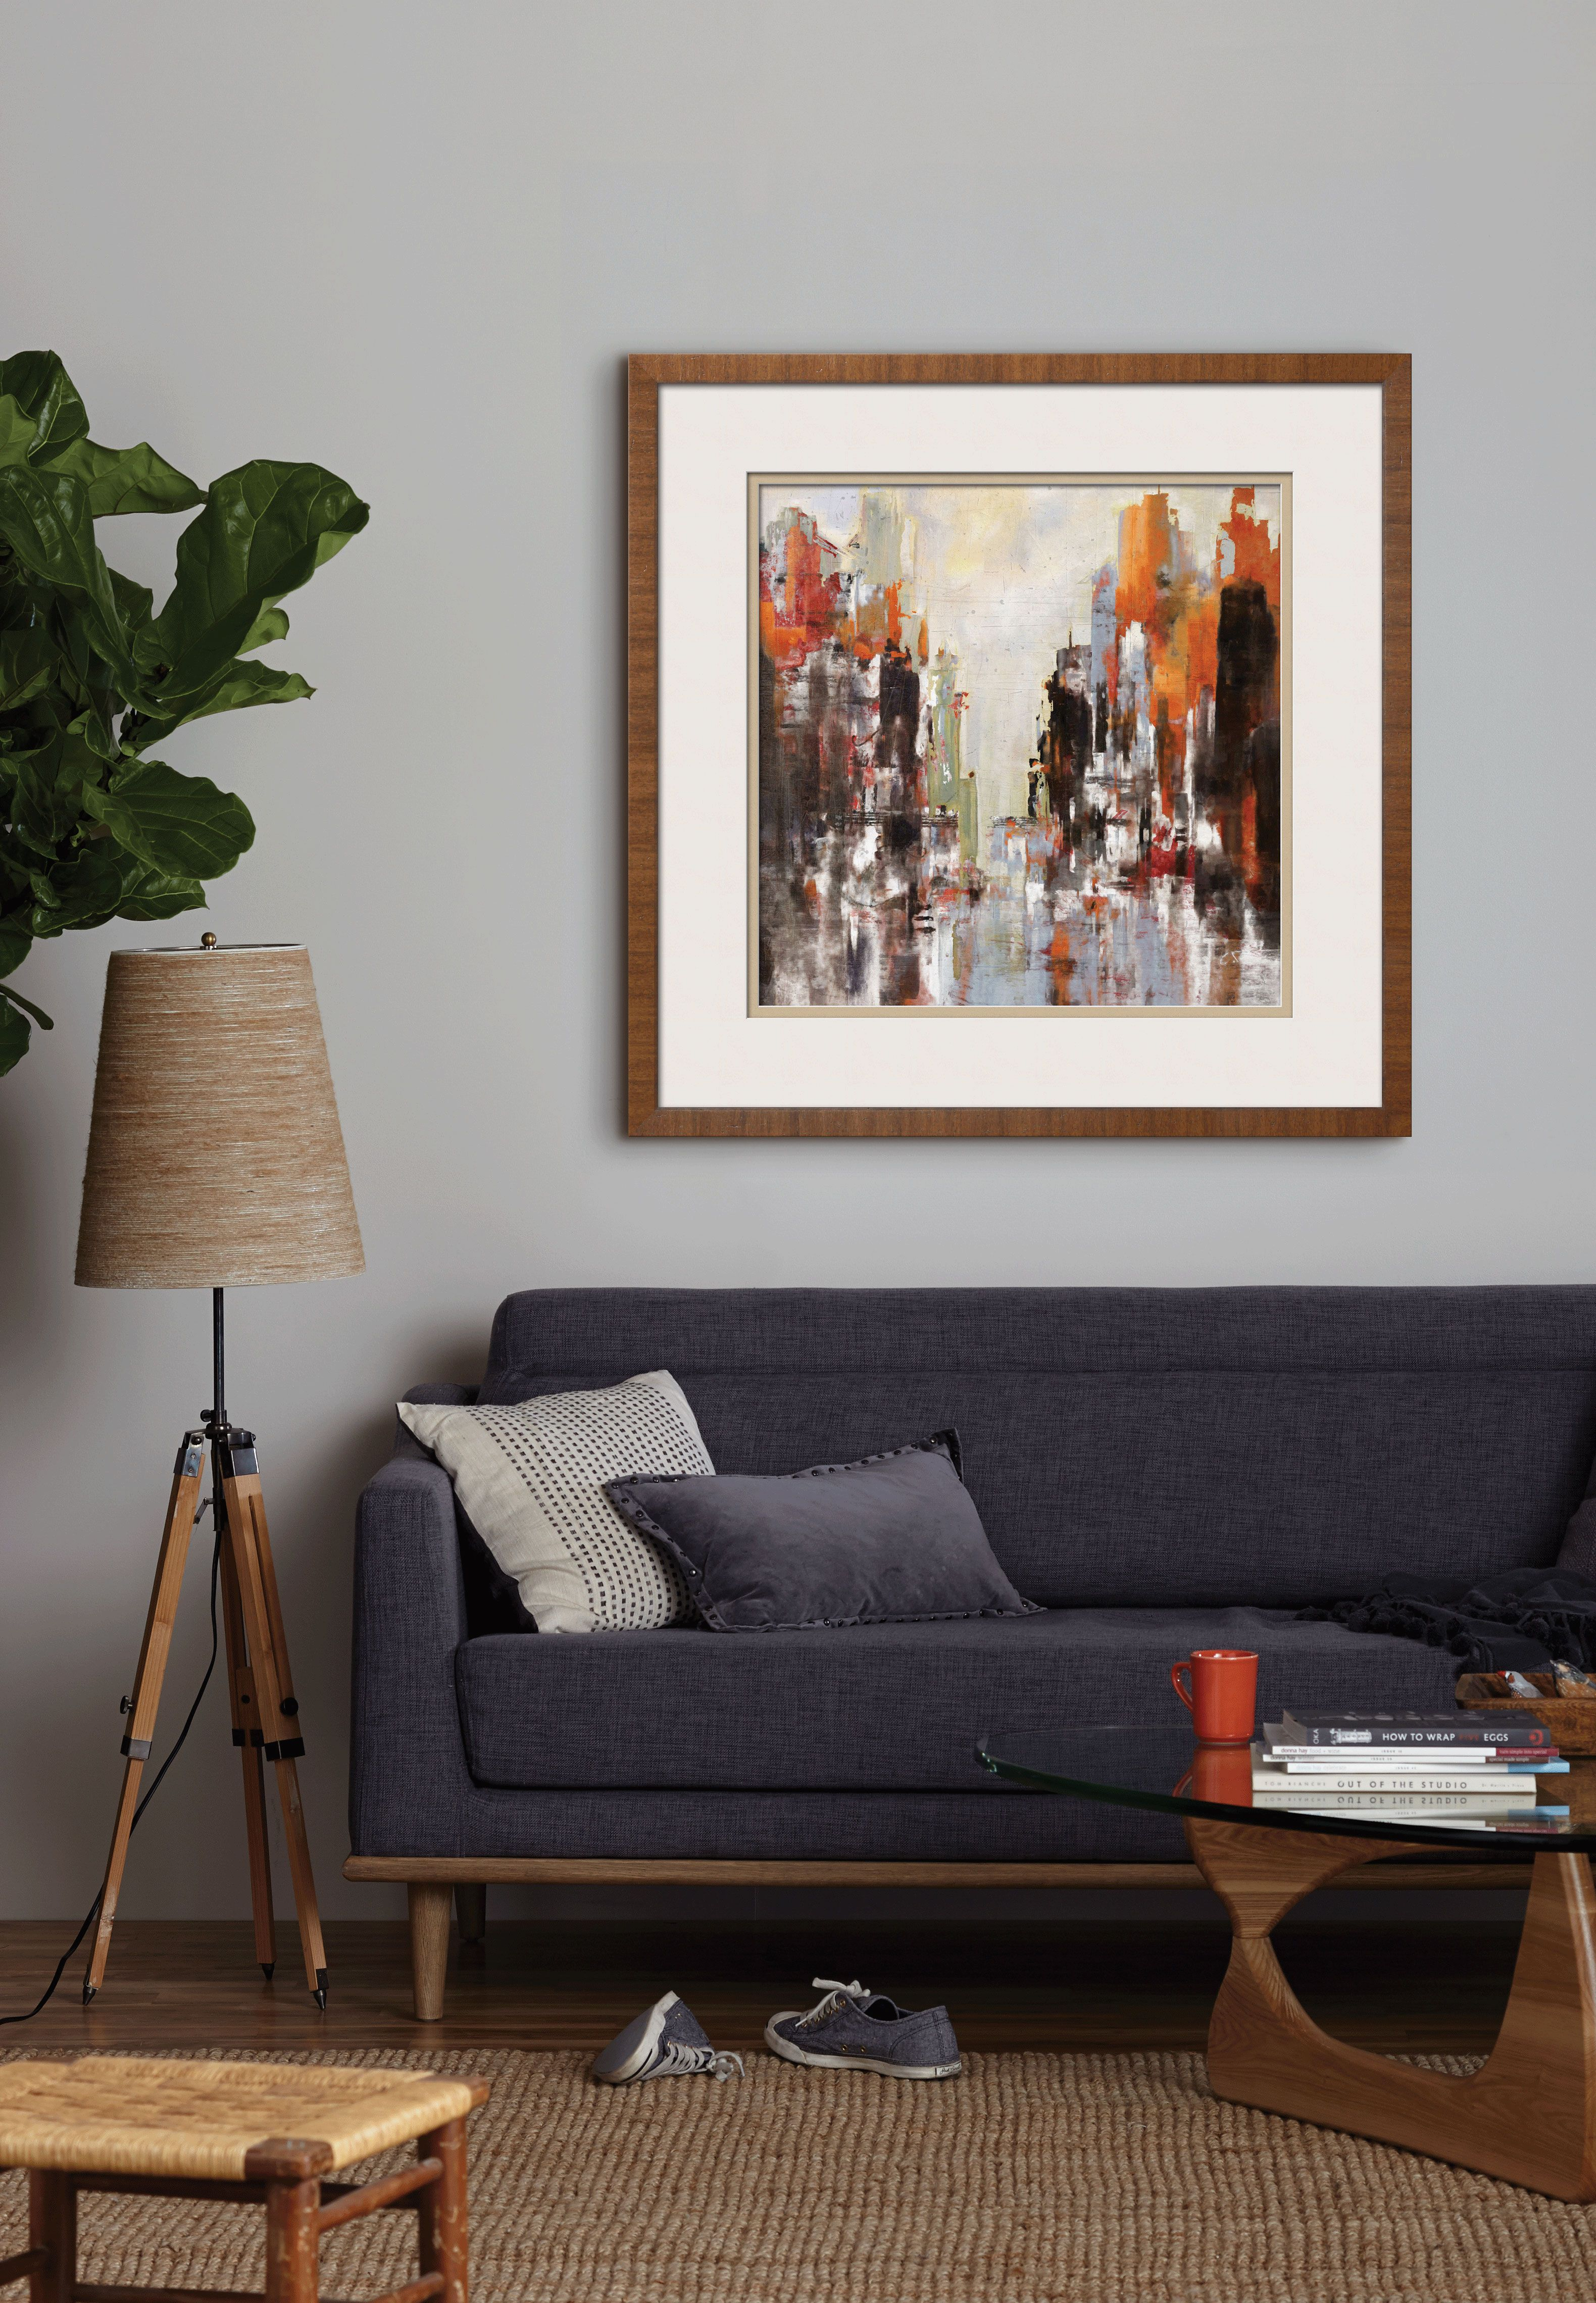 Design My Living Room Online: Get The Look With Art That Speaks To Your Style.